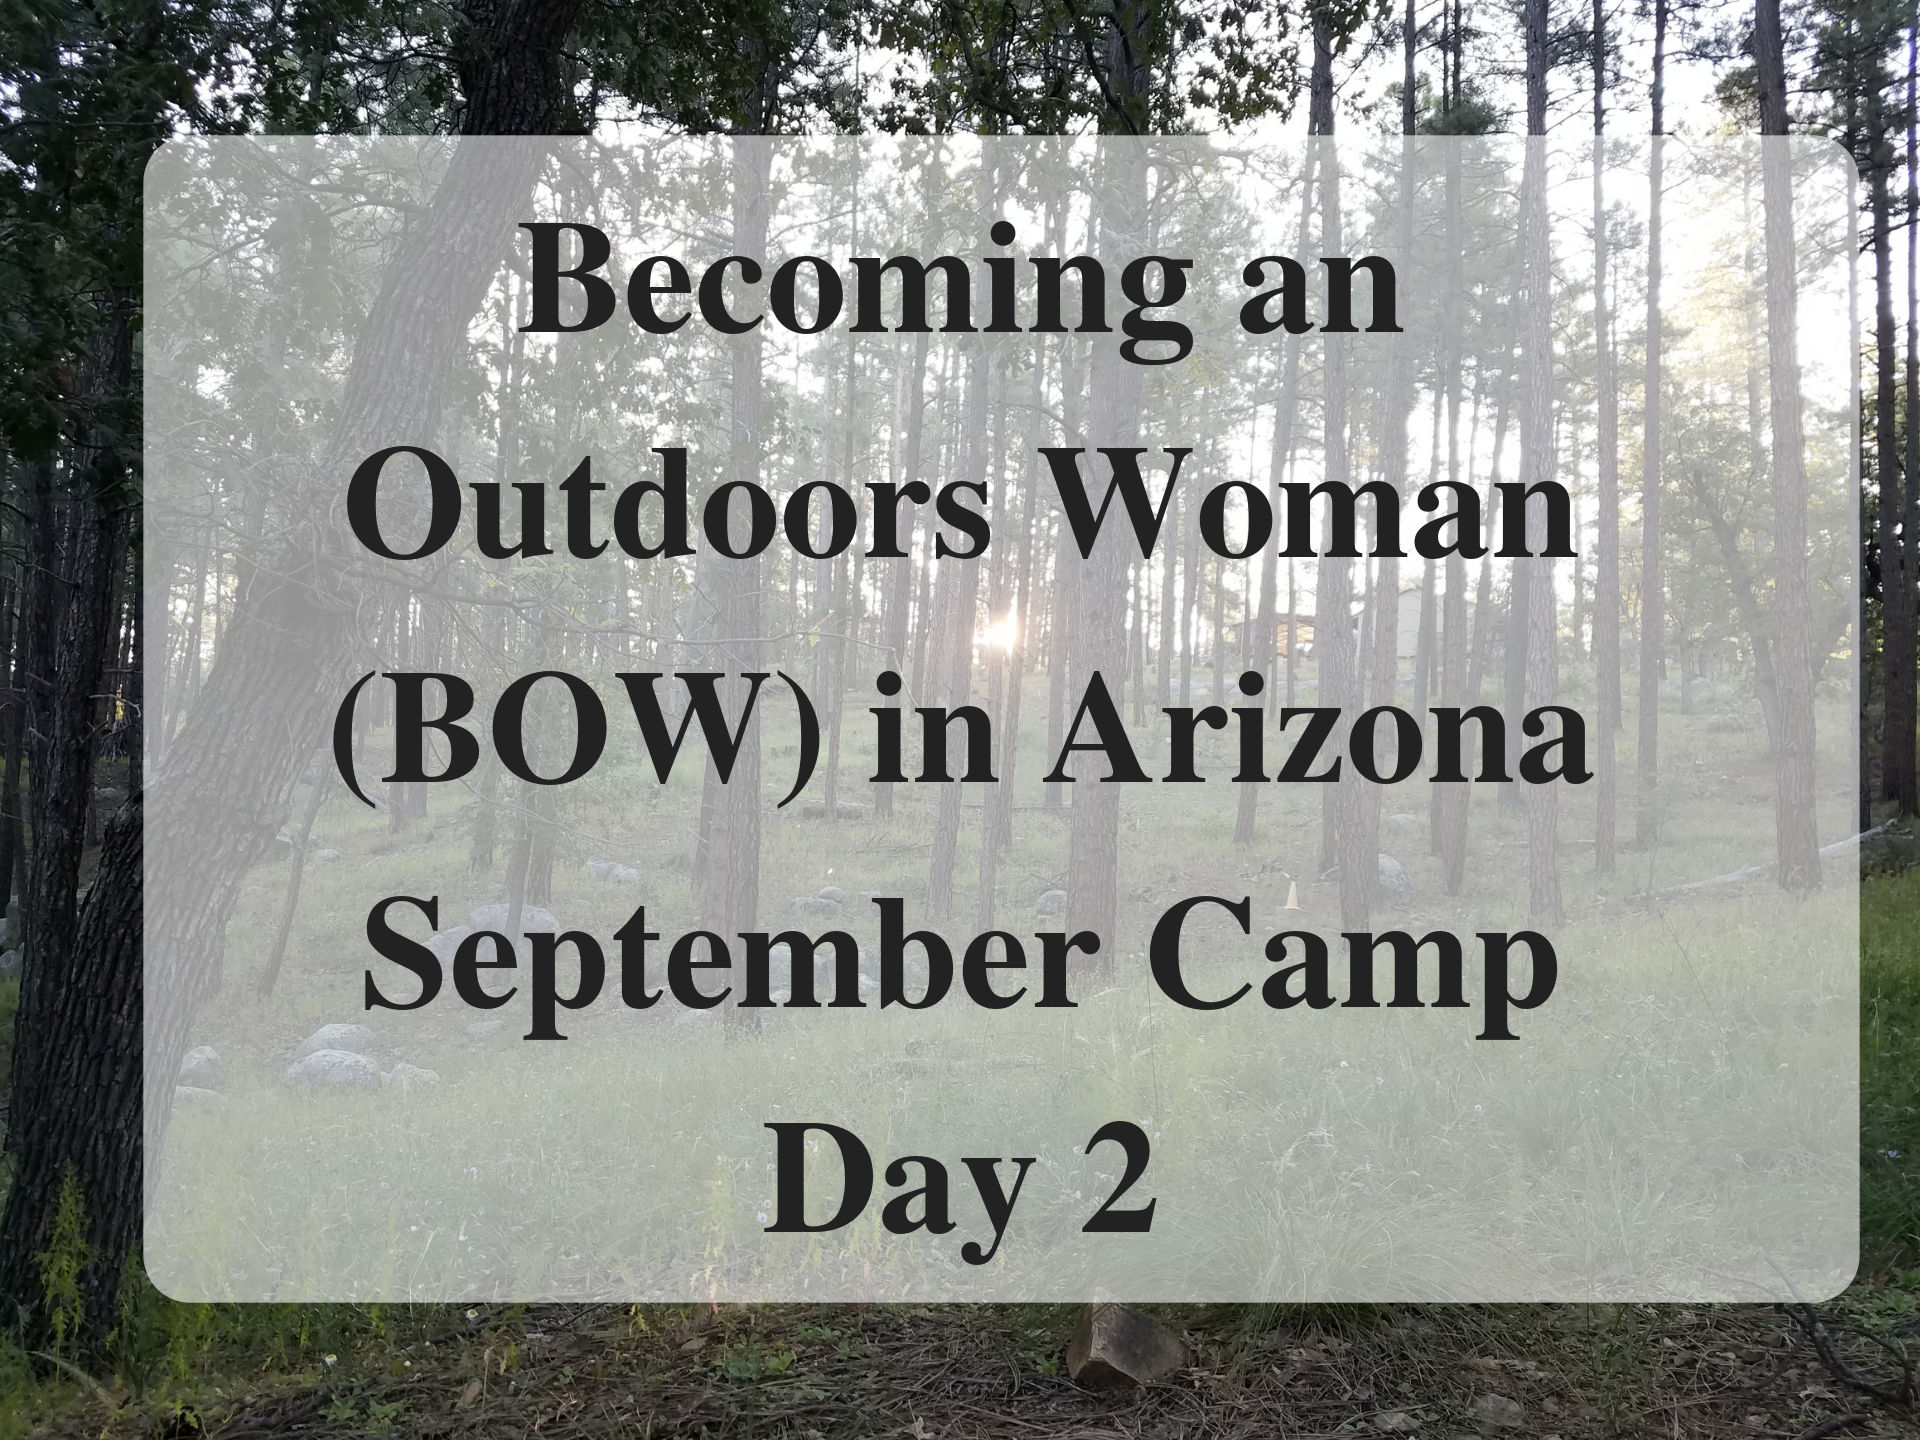 Becoming an Outdoors Woman (BOW) in Arizona September Camp Day 21